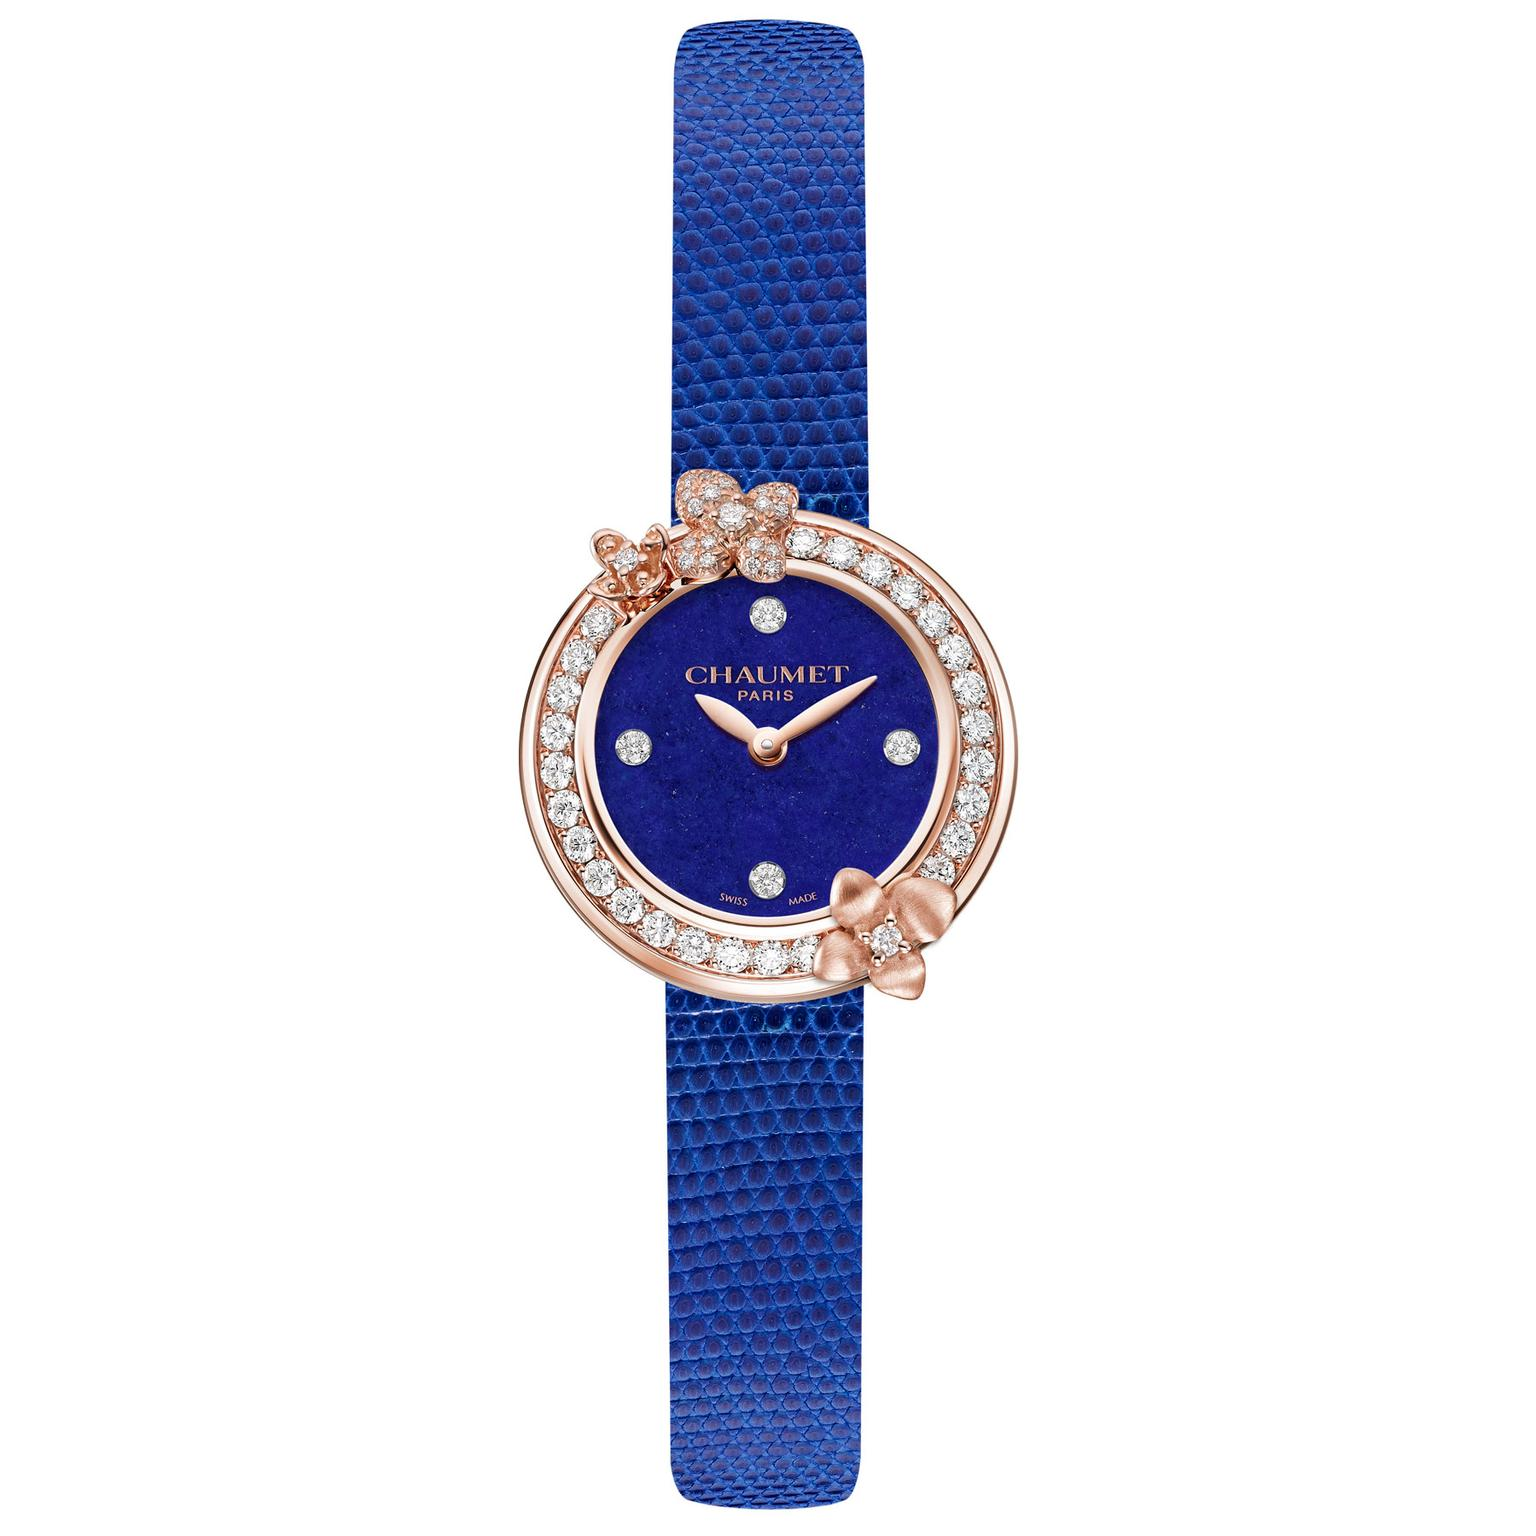 Chaumet Hortensia Eden watch with lapis lazuli dial